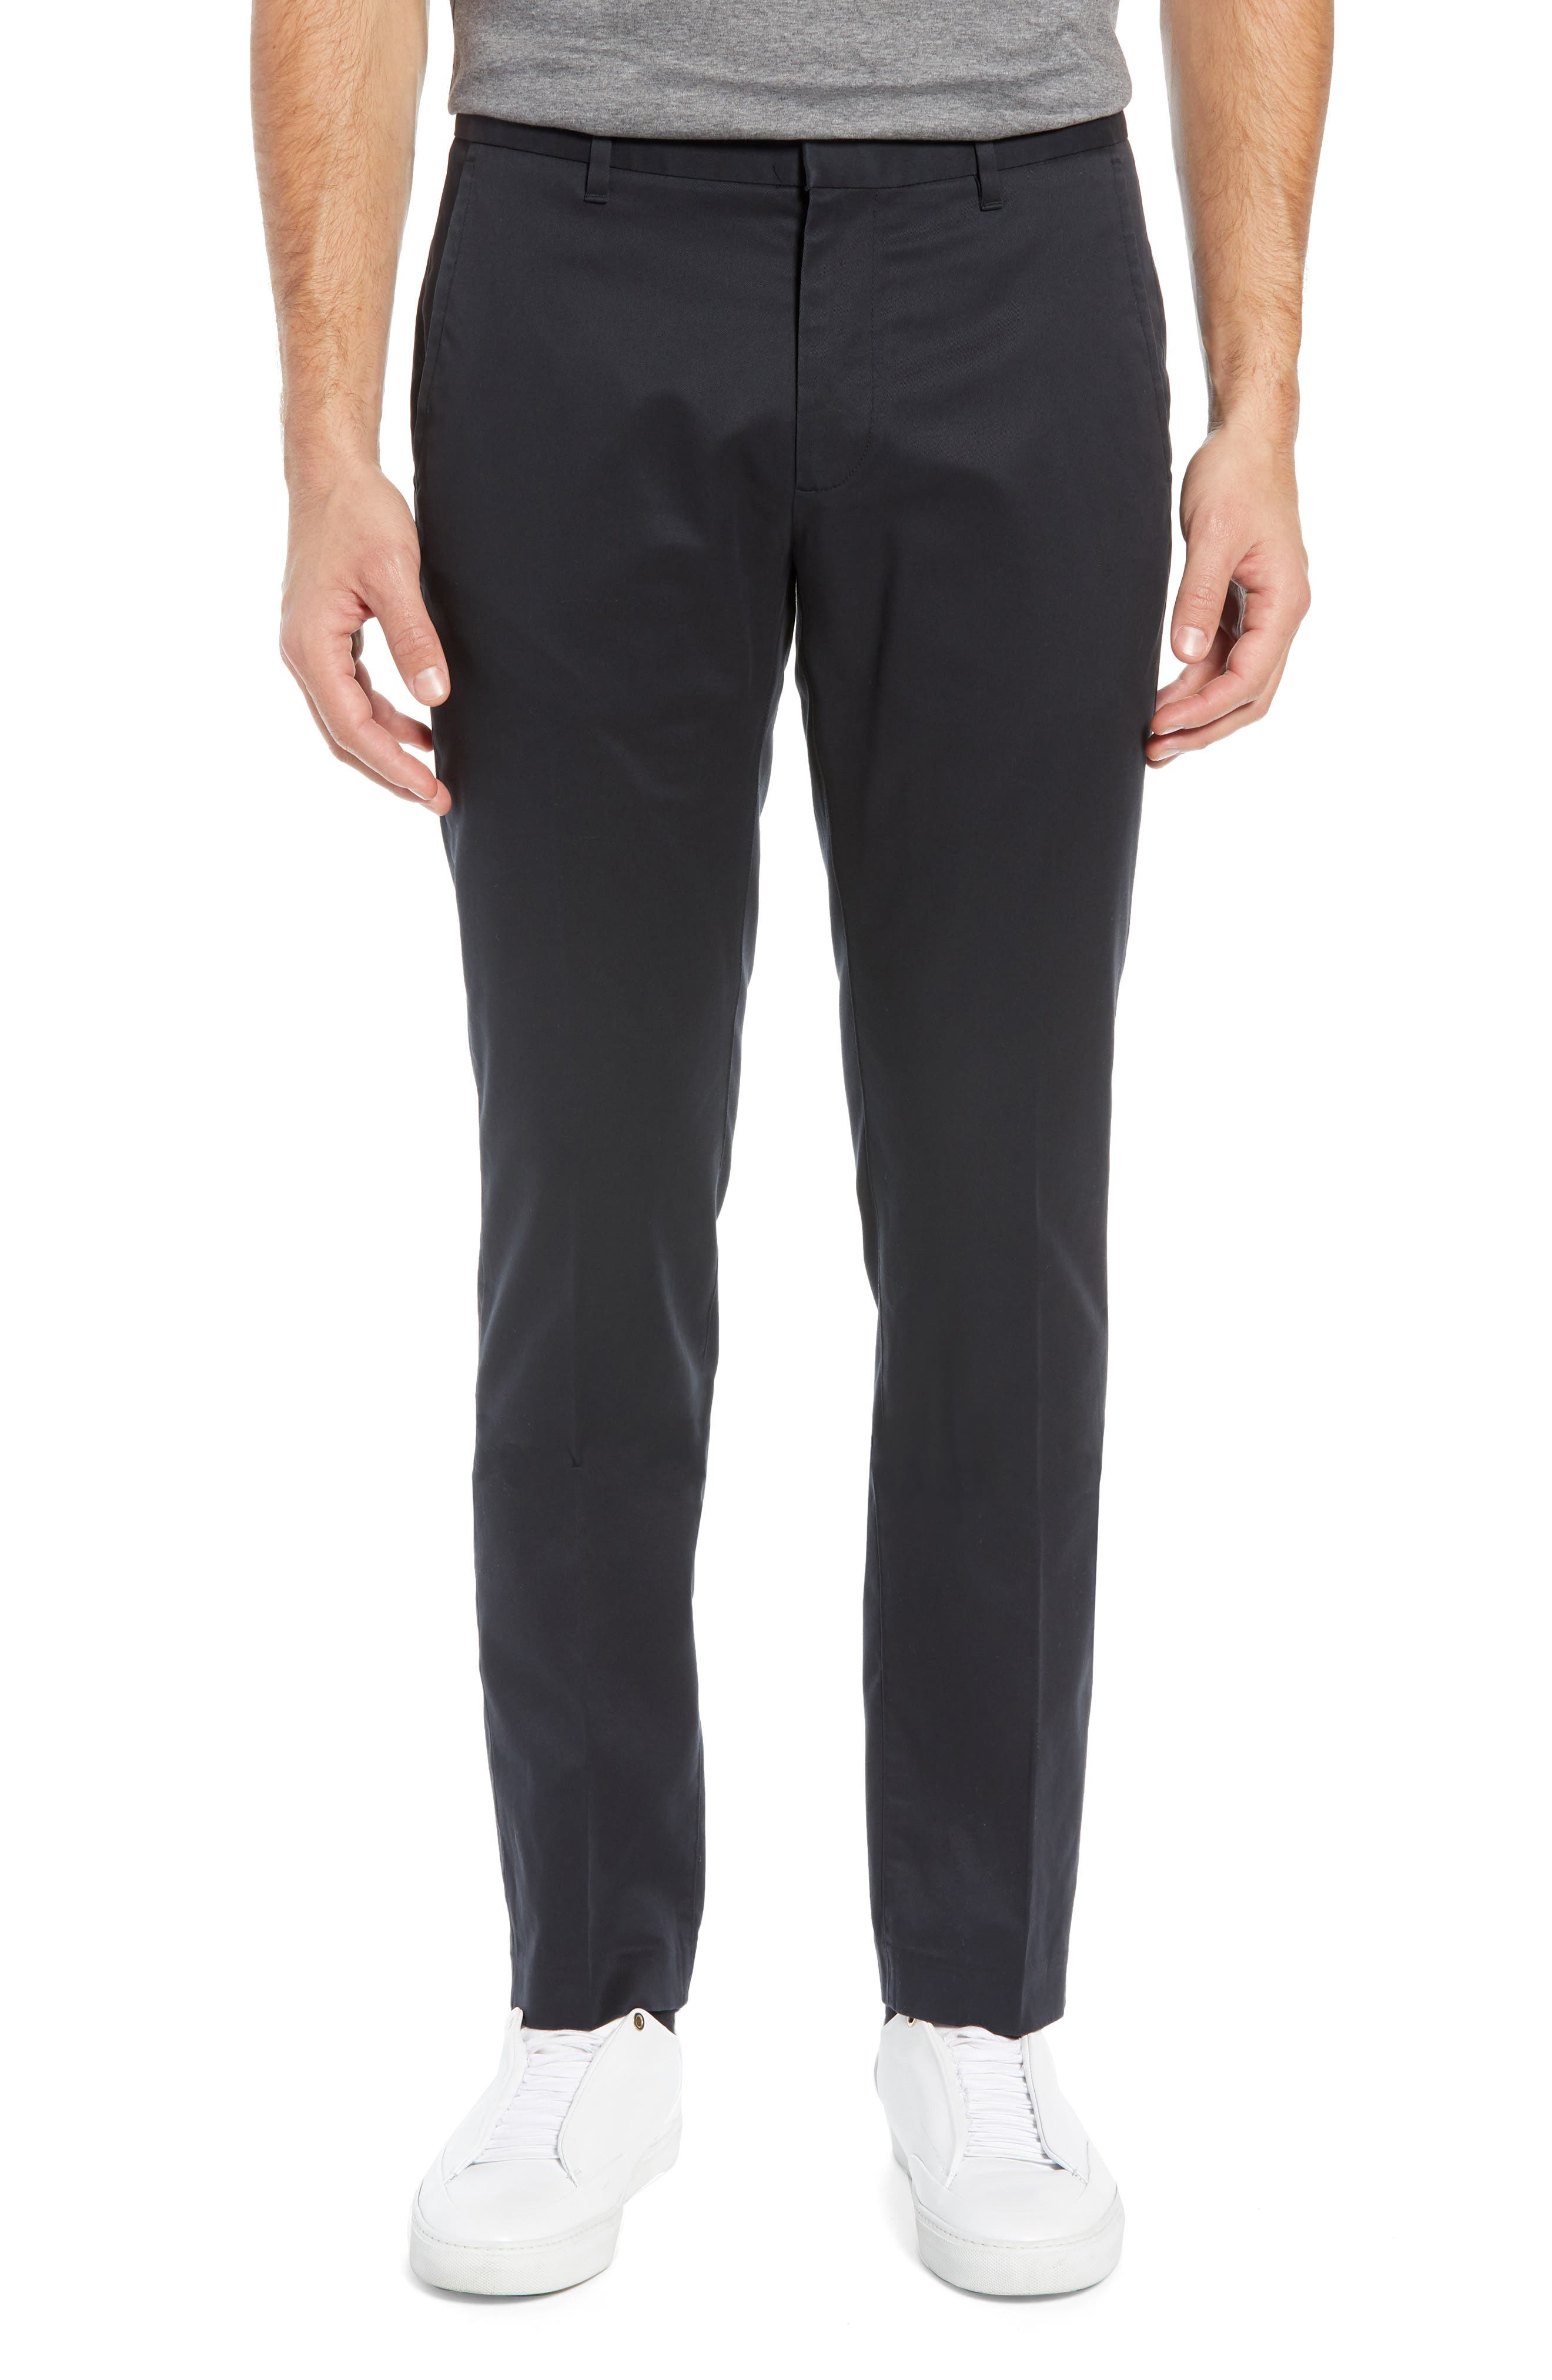 BONOBOS Weekday Warrior Tailored Fit Stretch Dress Pants, Main, color, BLACK